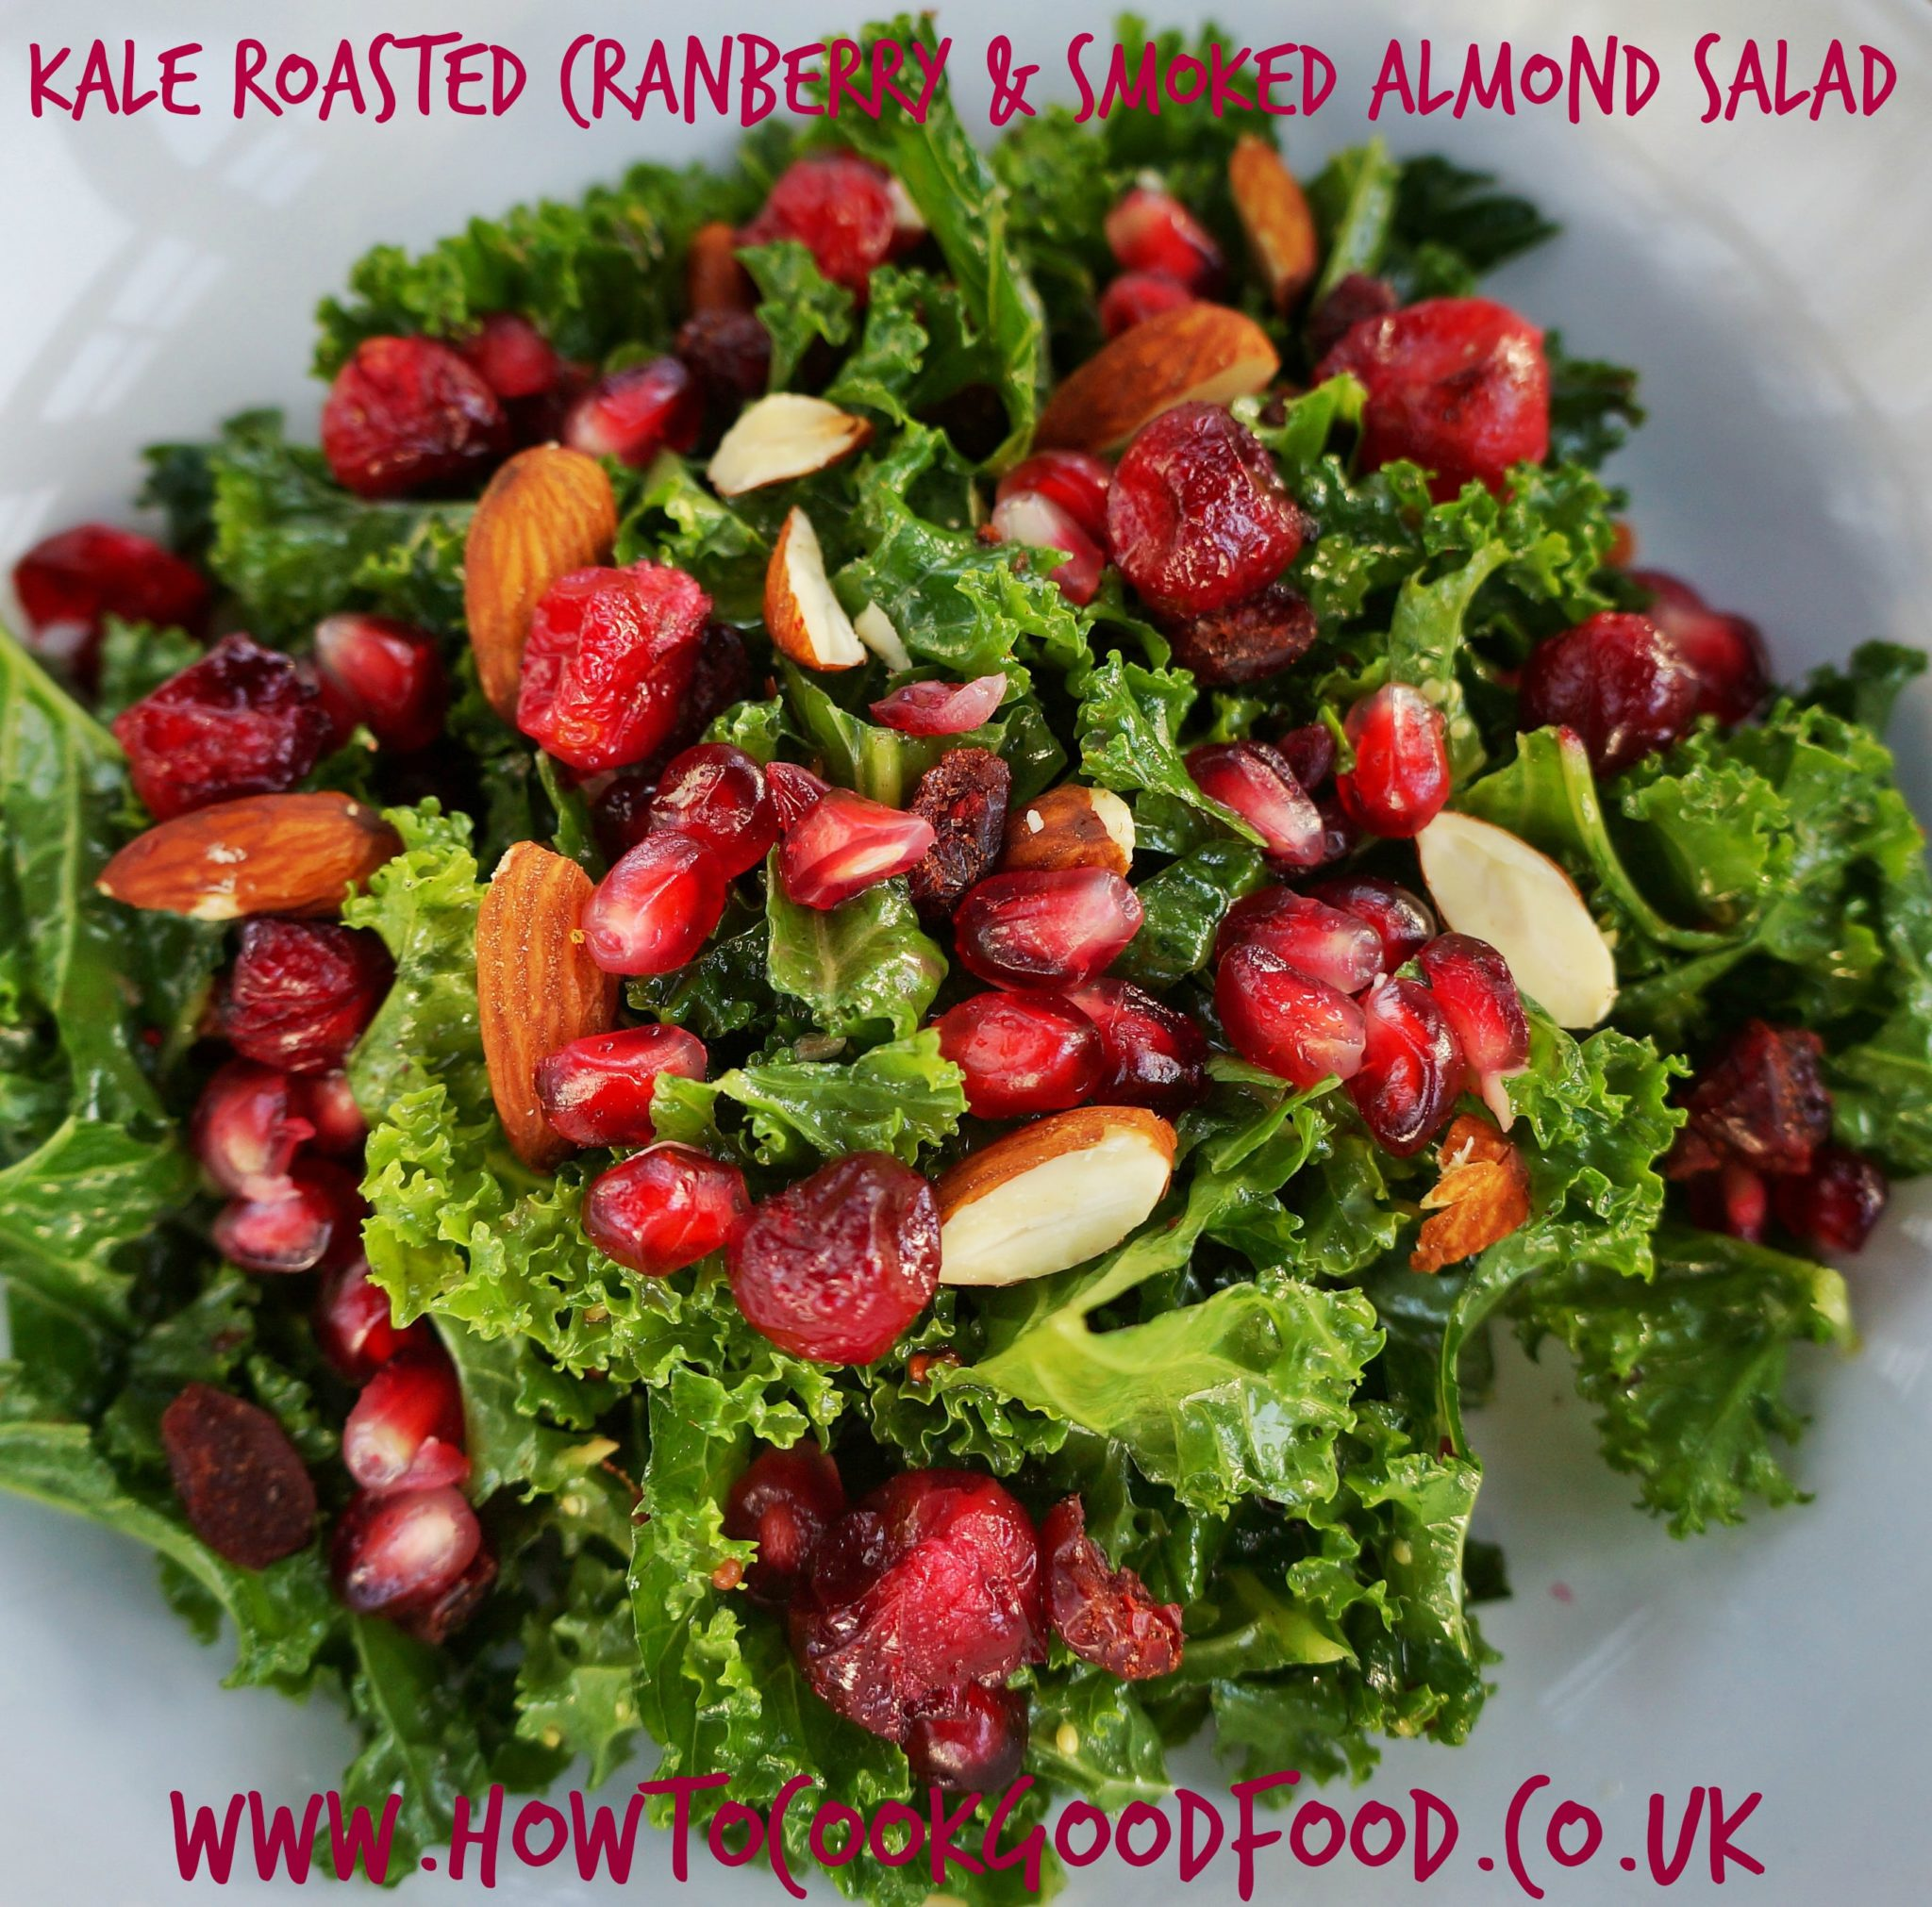 Kale Roasted Cranberry & Smoked Almond Salad